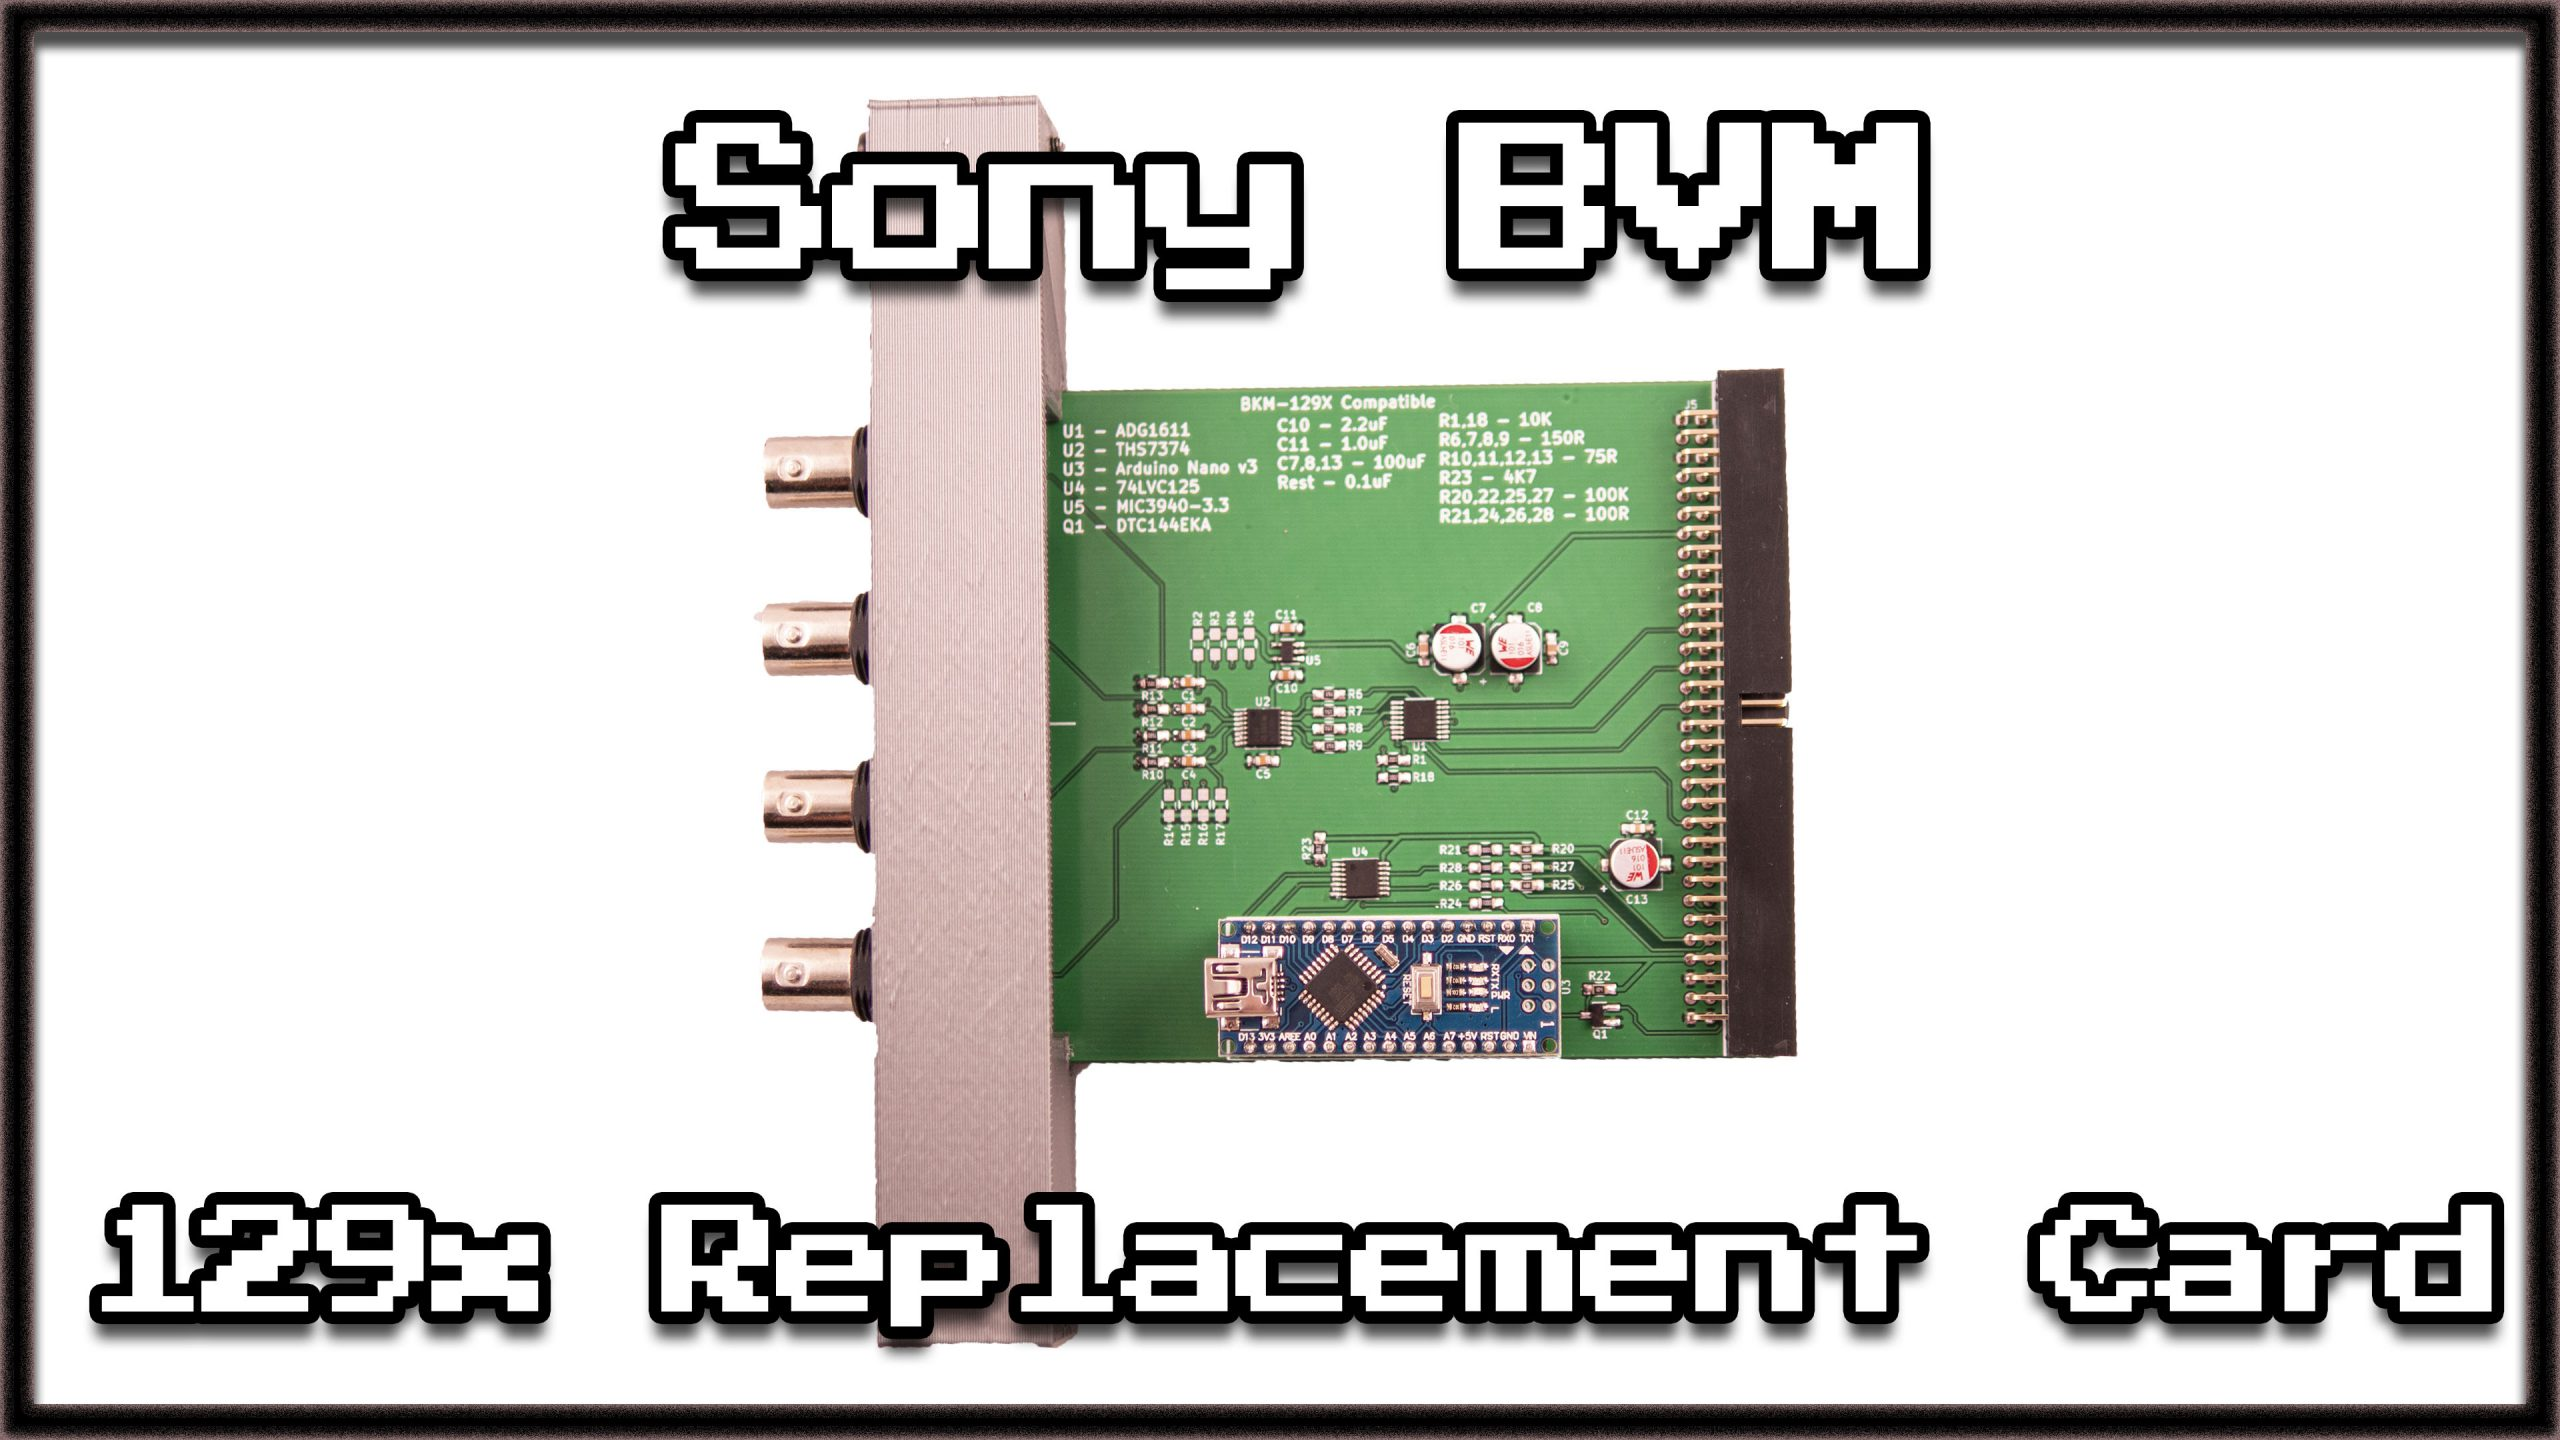 Testing The BKM-129x Replacement Board